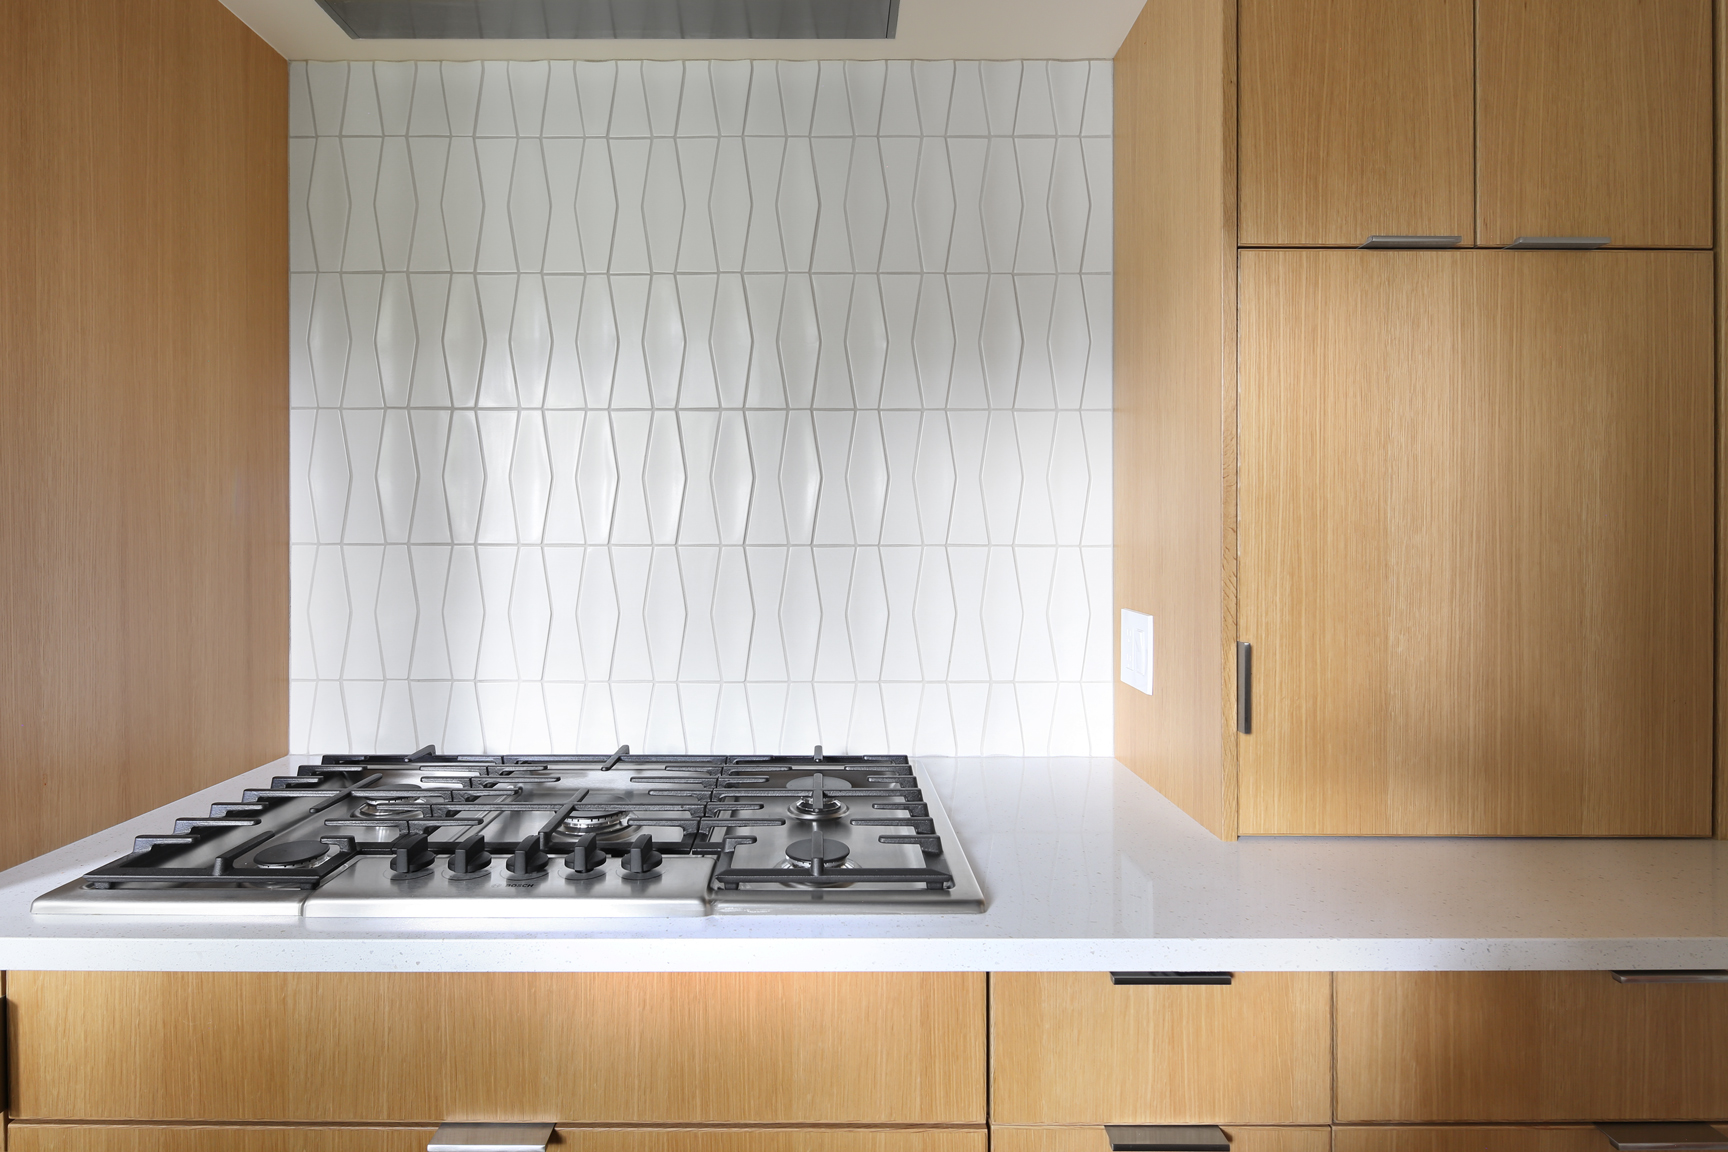 Backsplace, gas range and cabinets by Smith and Vallee